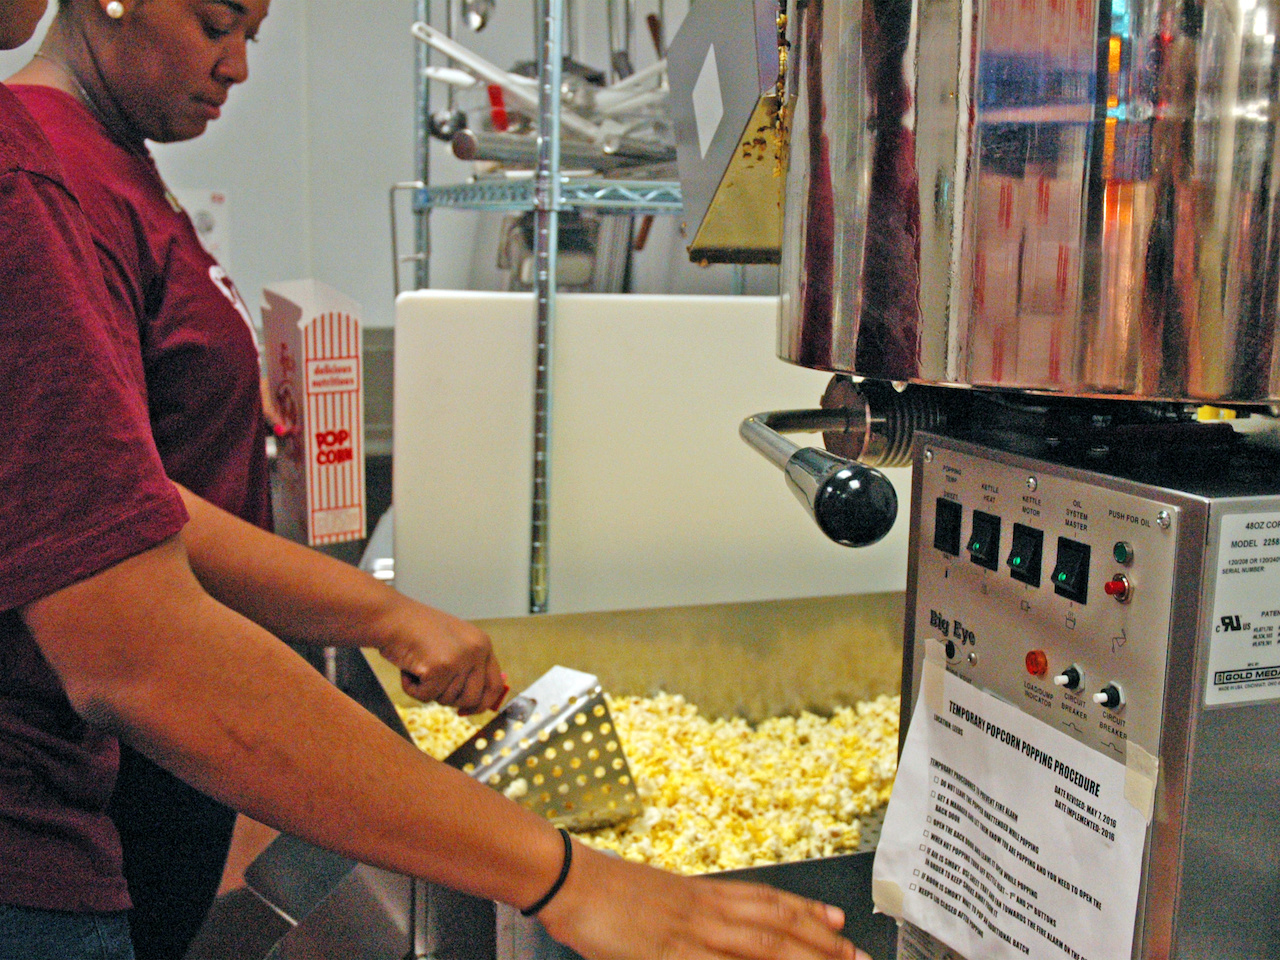 Employees scoop buttery popcorn into boxes.